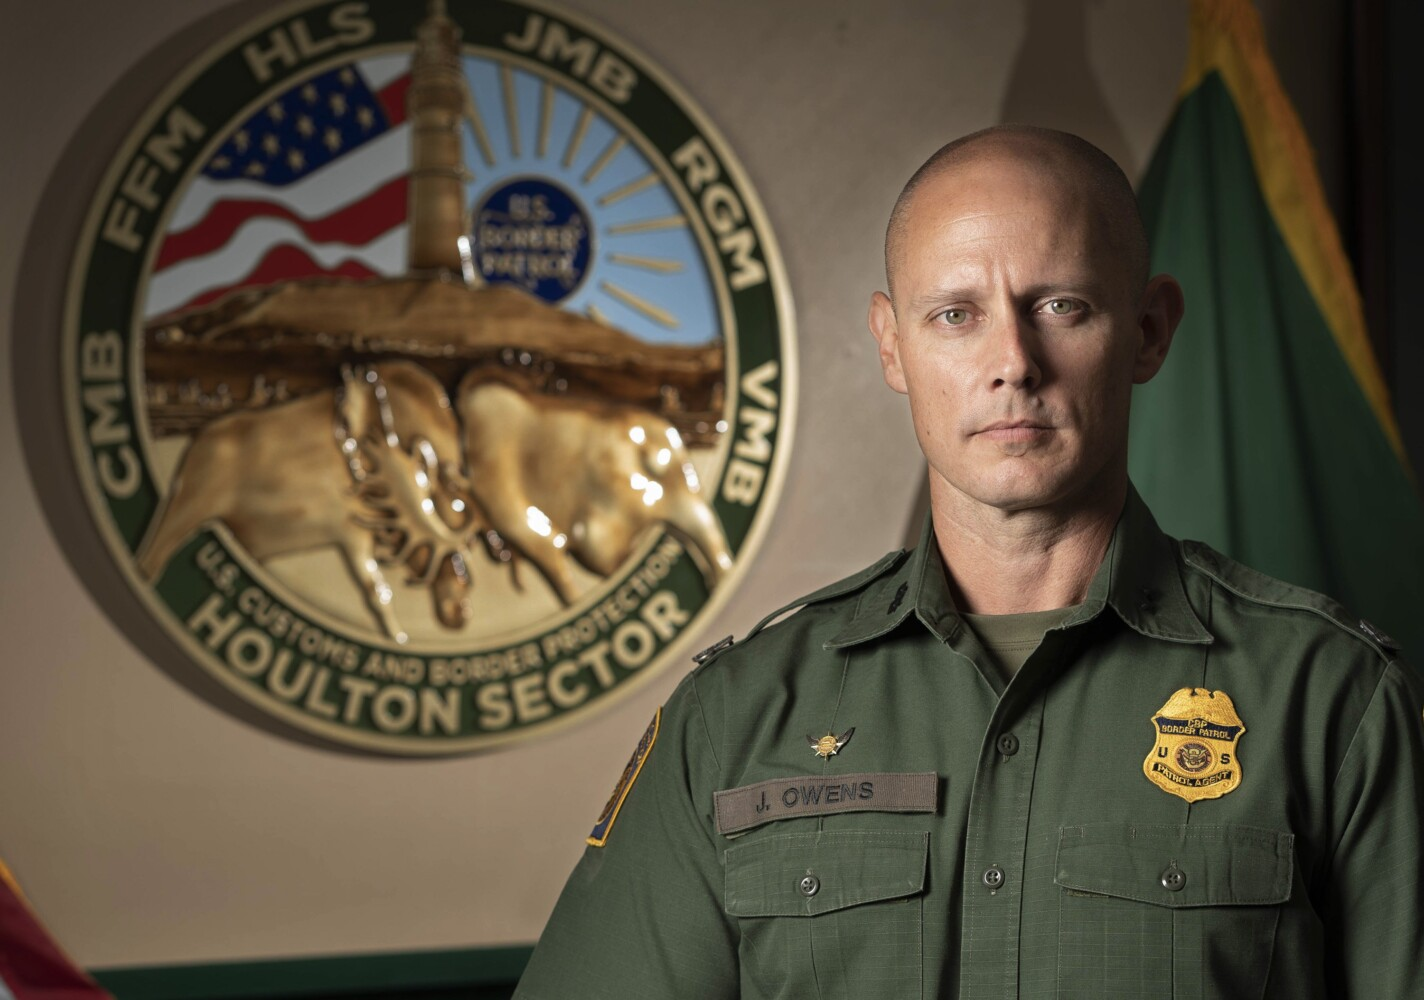 New border patrol chief explains why he uses #BuildTheWall and what his plans are for Maine - CentralMaine.com